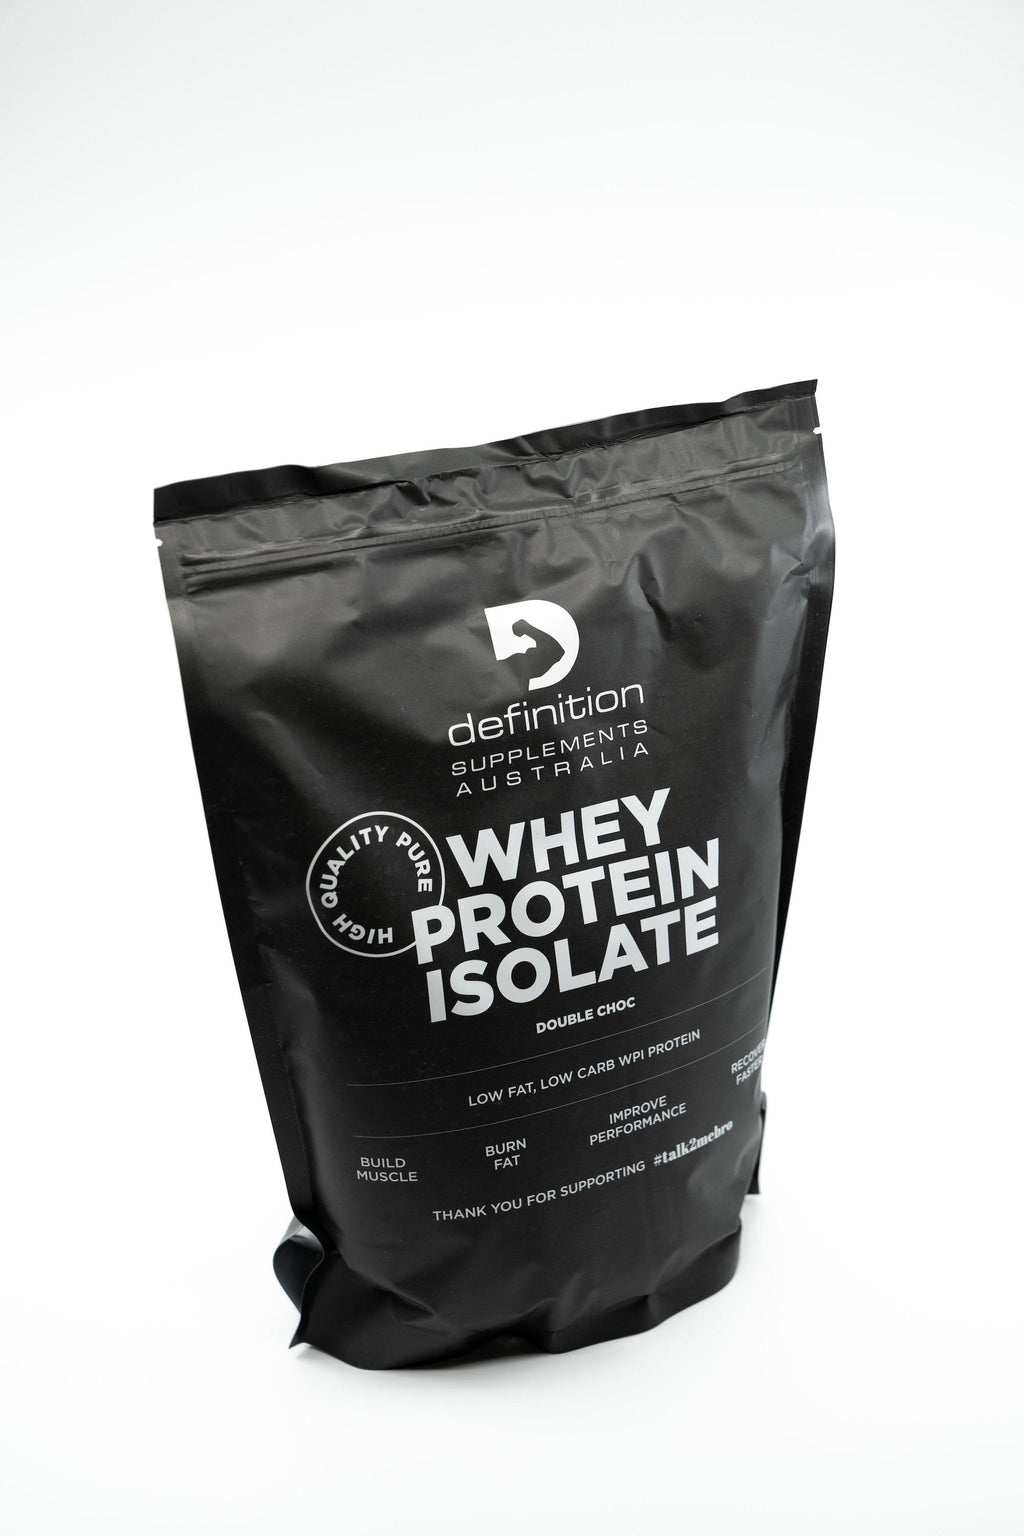 WHEY PROTEIN ISOLATE - DOUBLE CHOC